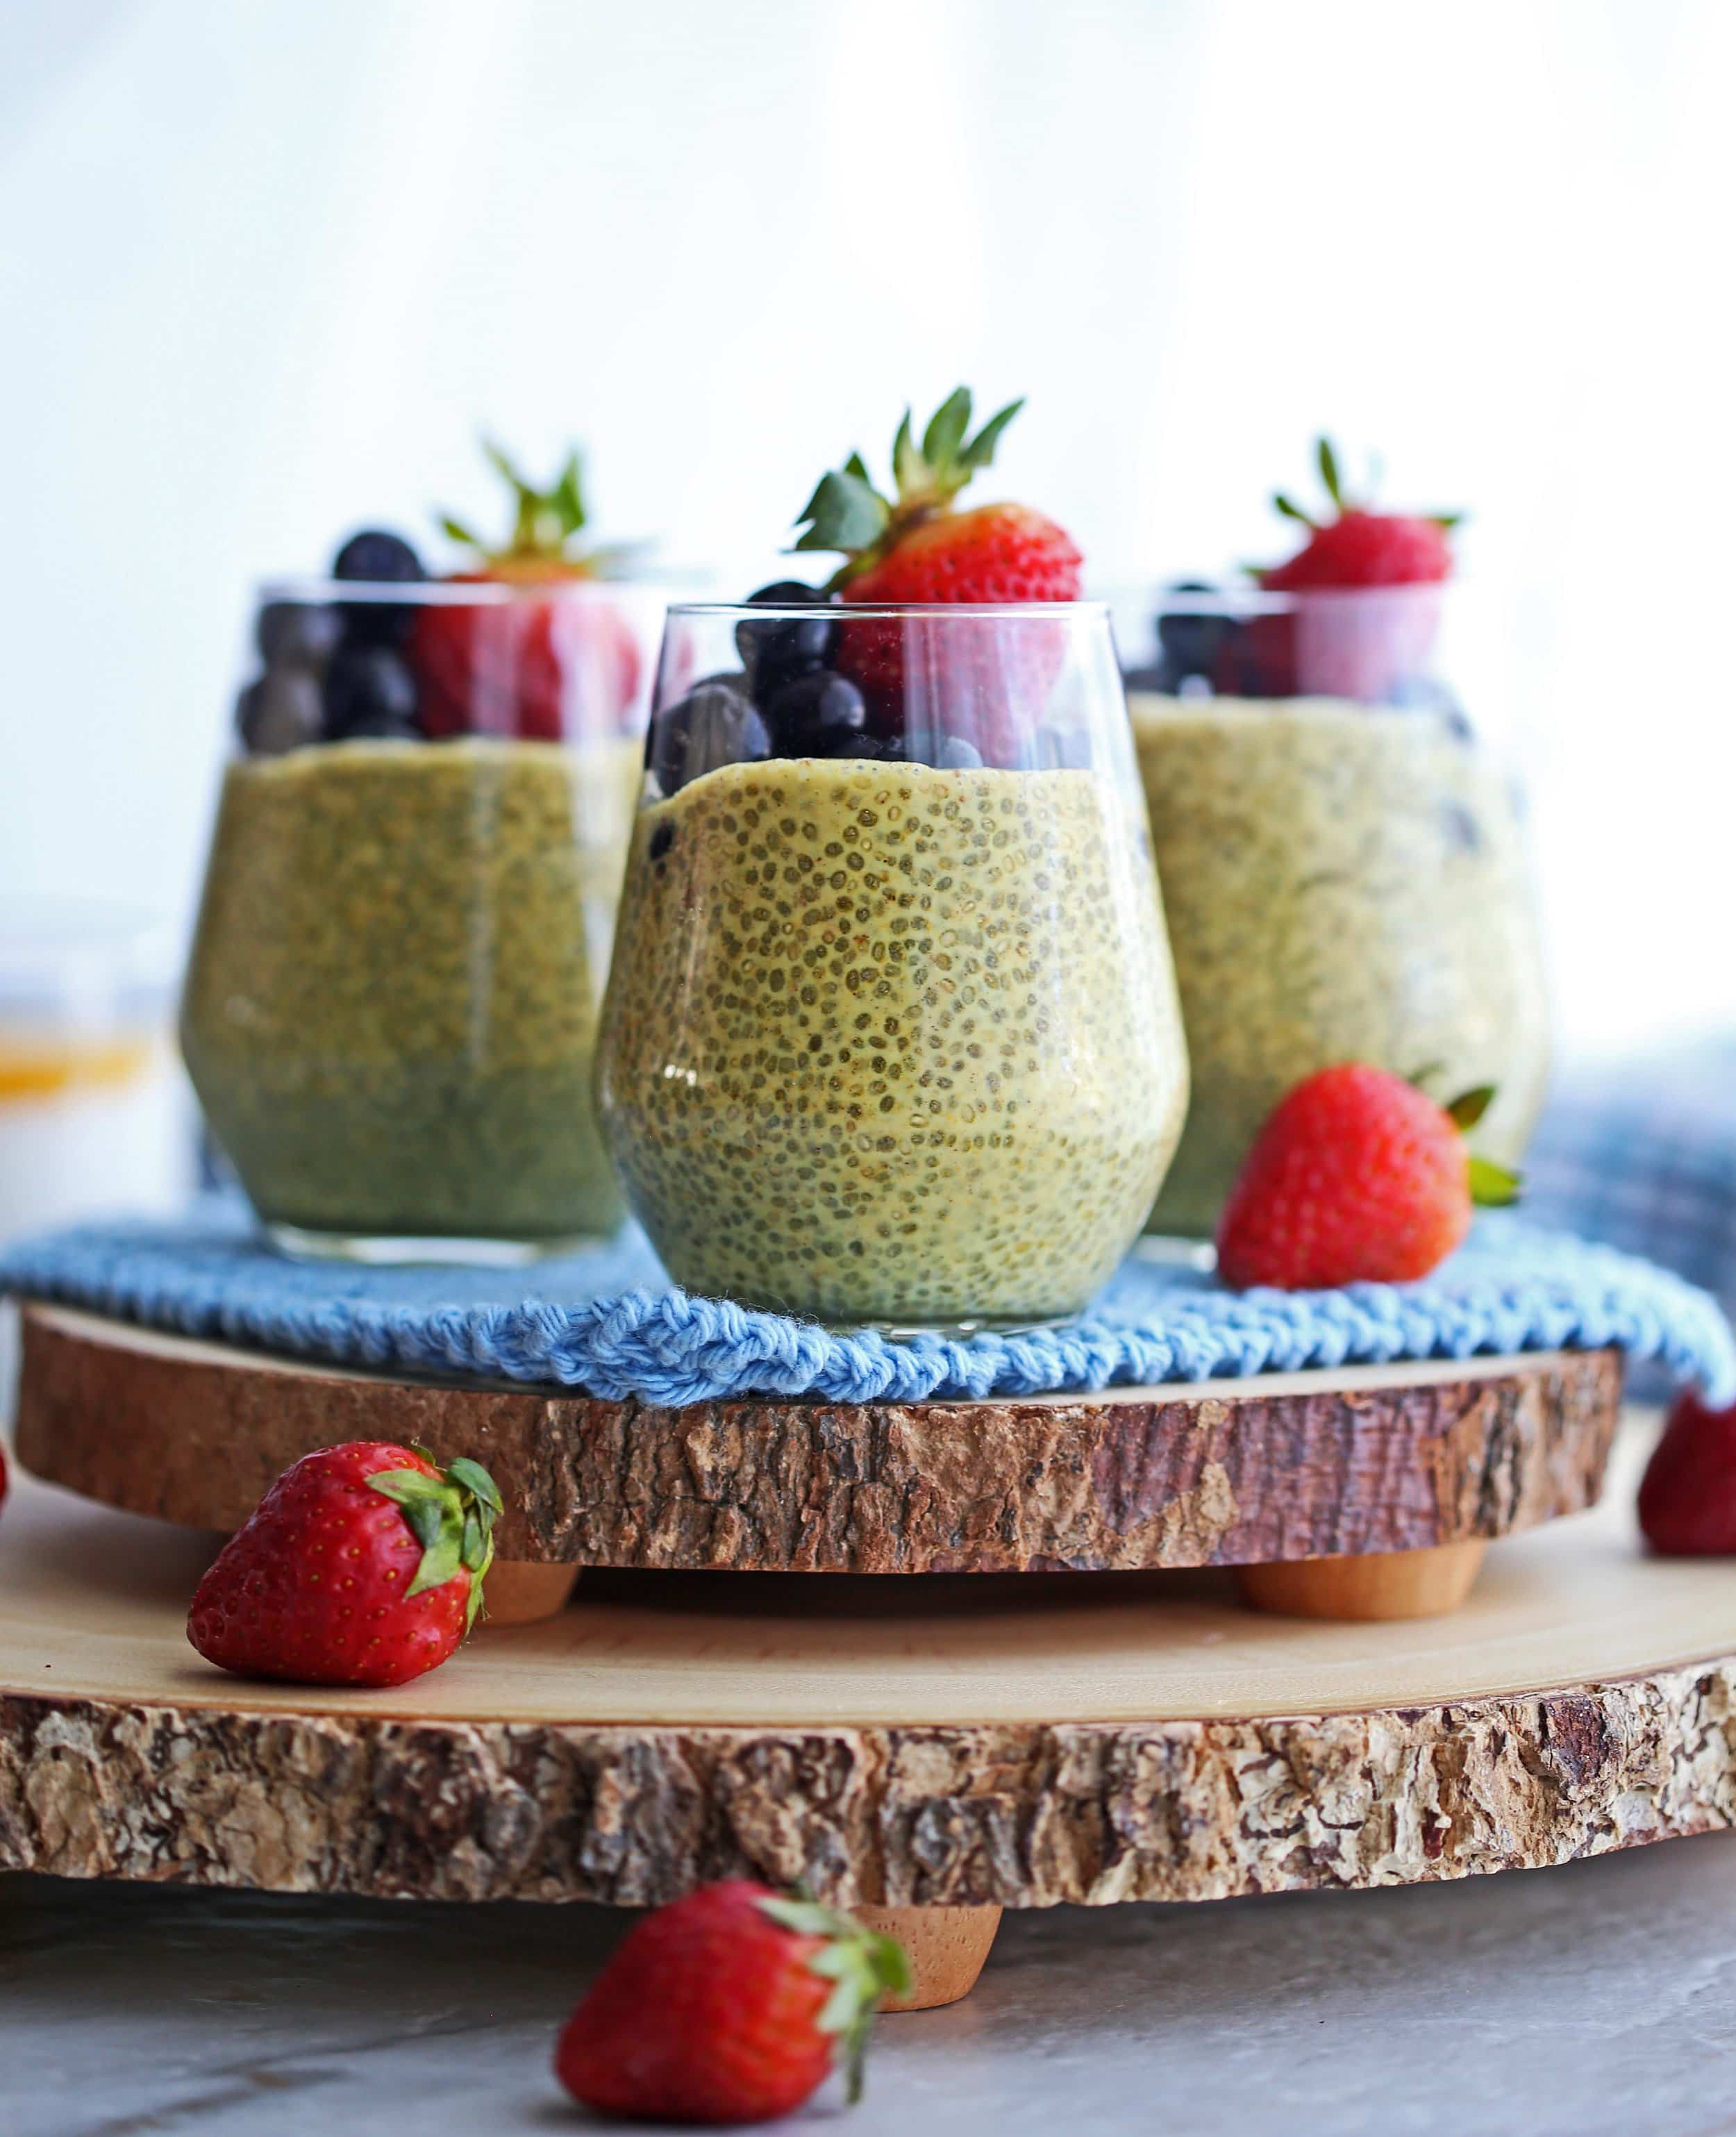 Side view of three glasses full of turmeric milk chia pudding with strawberries and blueberries on a wooden slab.